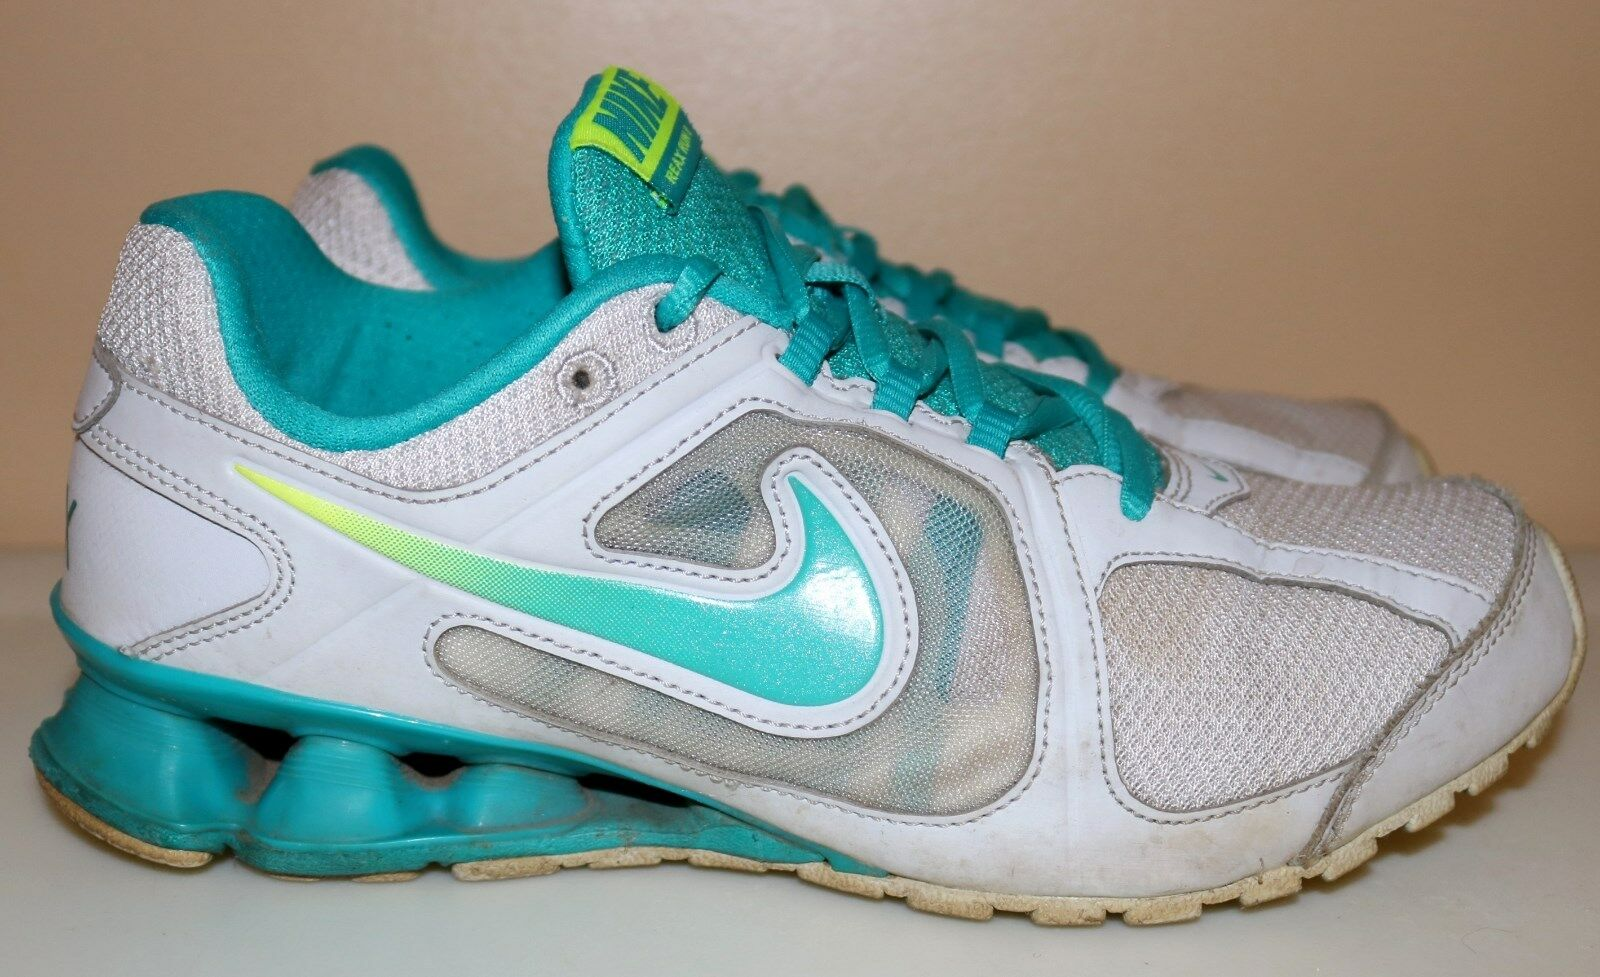 Nike 8 Reax Run 8 Nike Training Running 599562-011 Women Size 7.5 Turquoise Blue 9f3089